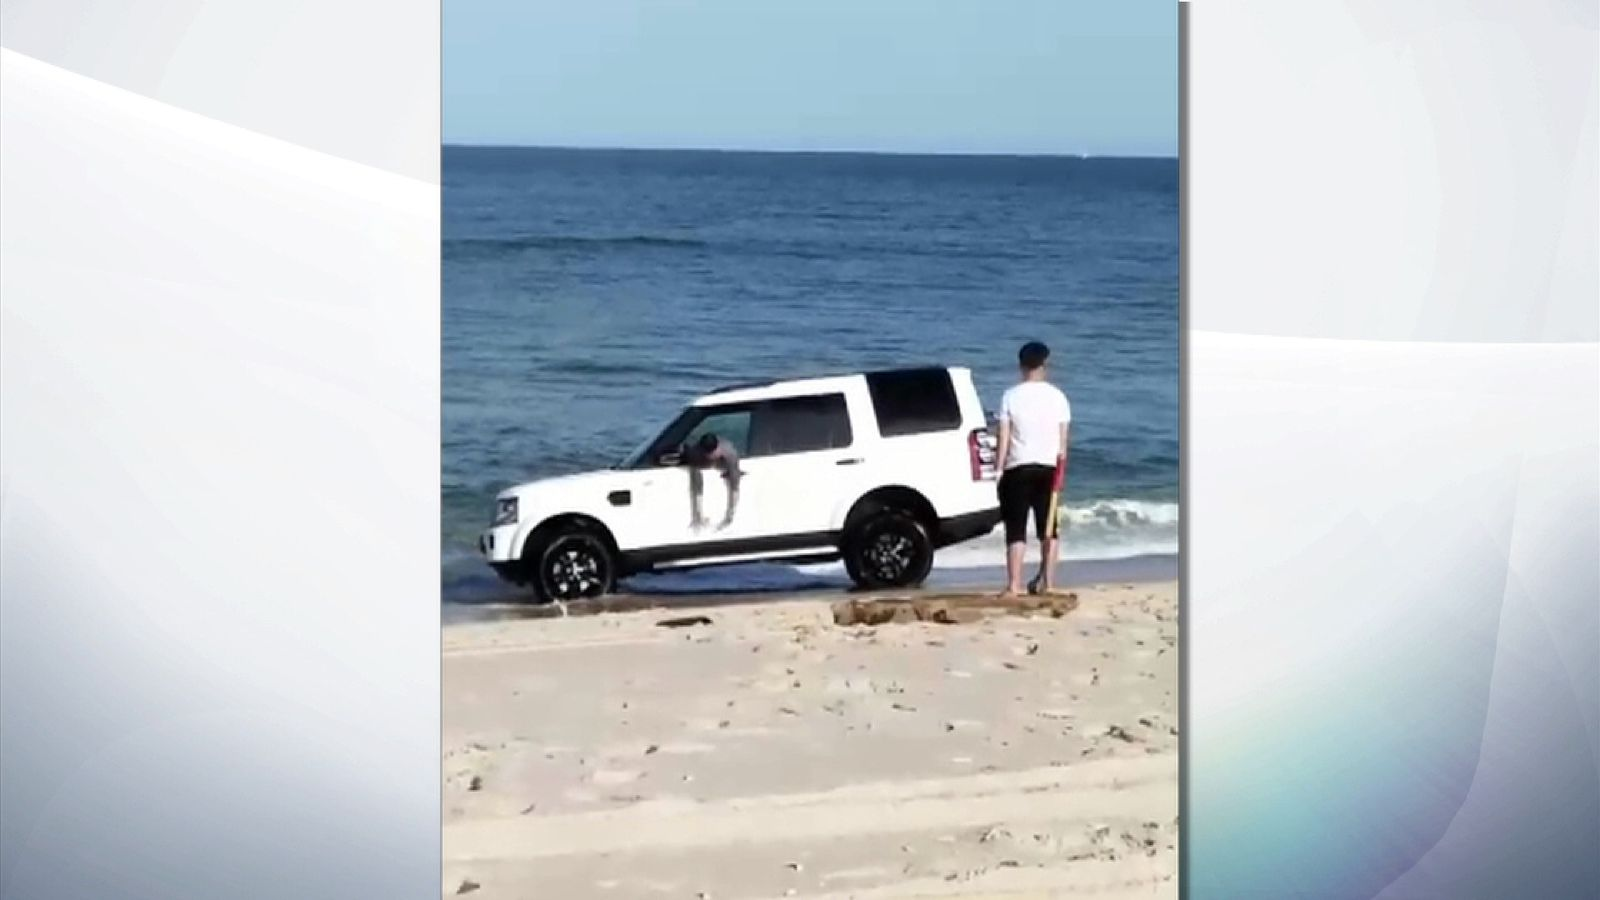 Land Rover sinks in sand 'as driver takes photos'